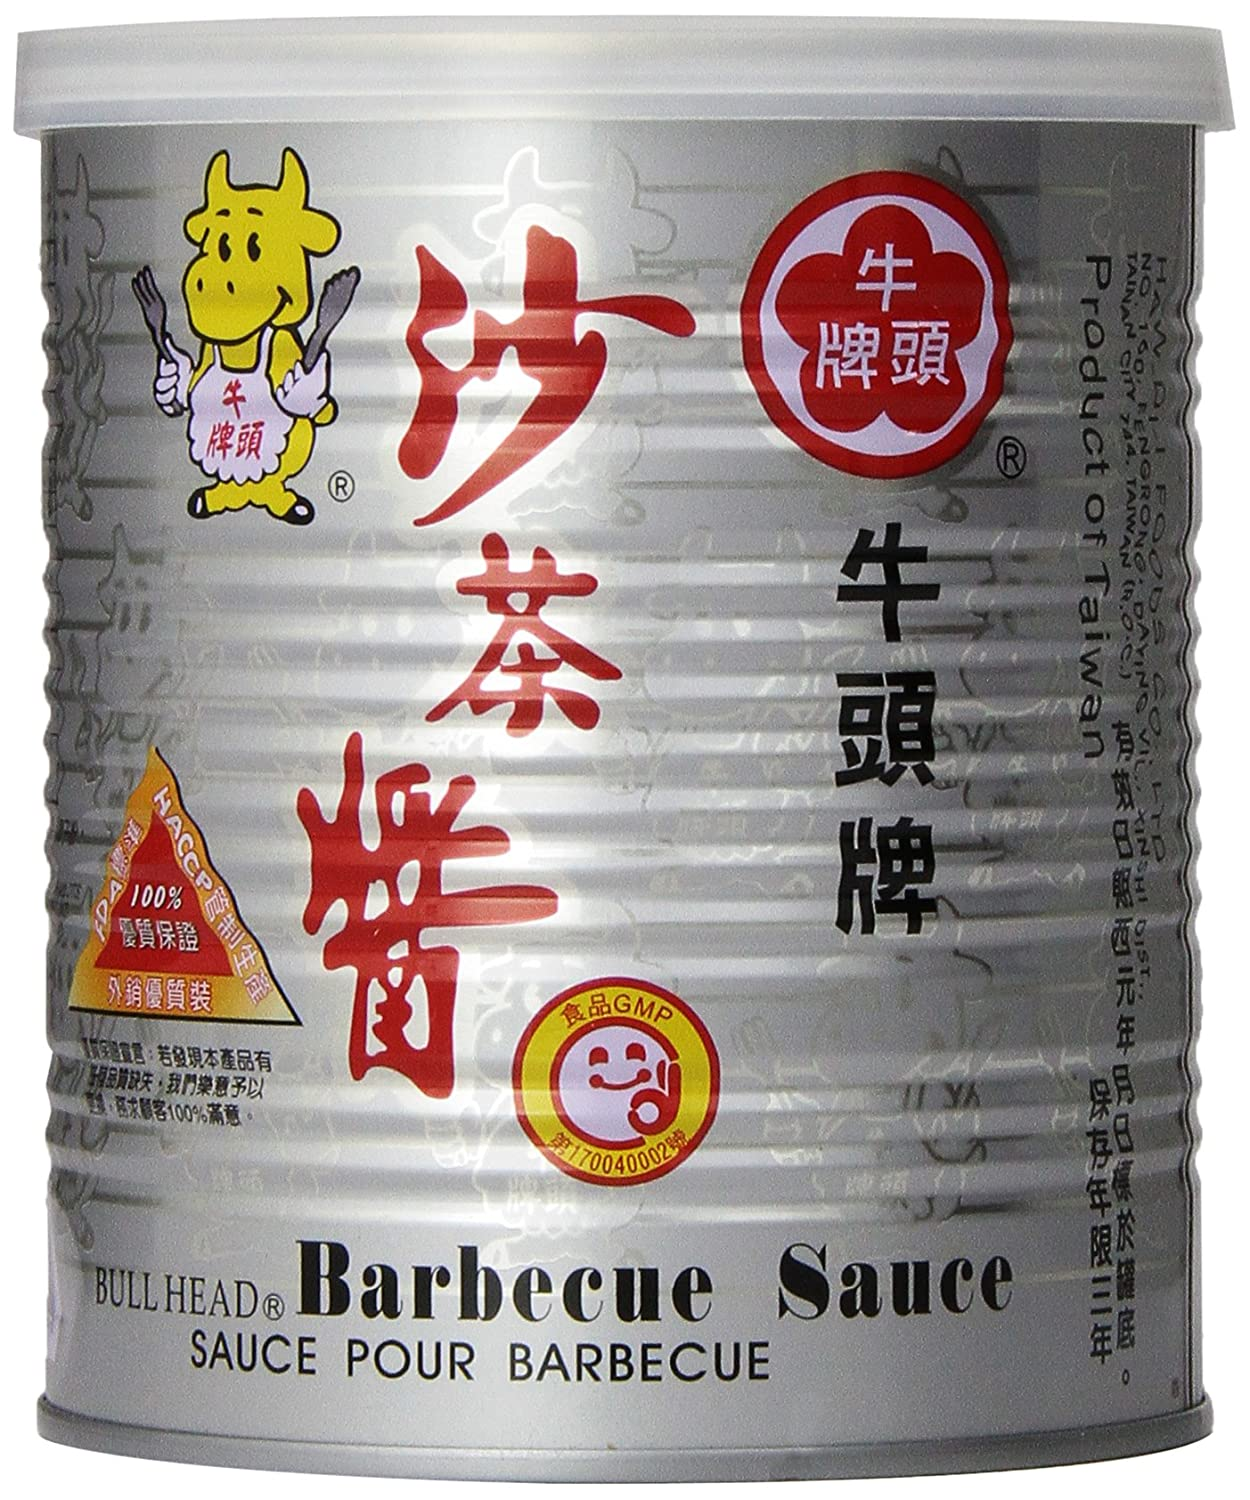 Easy-to-use Bullhead Spring new work Barbecue Sauce 26-Ounce